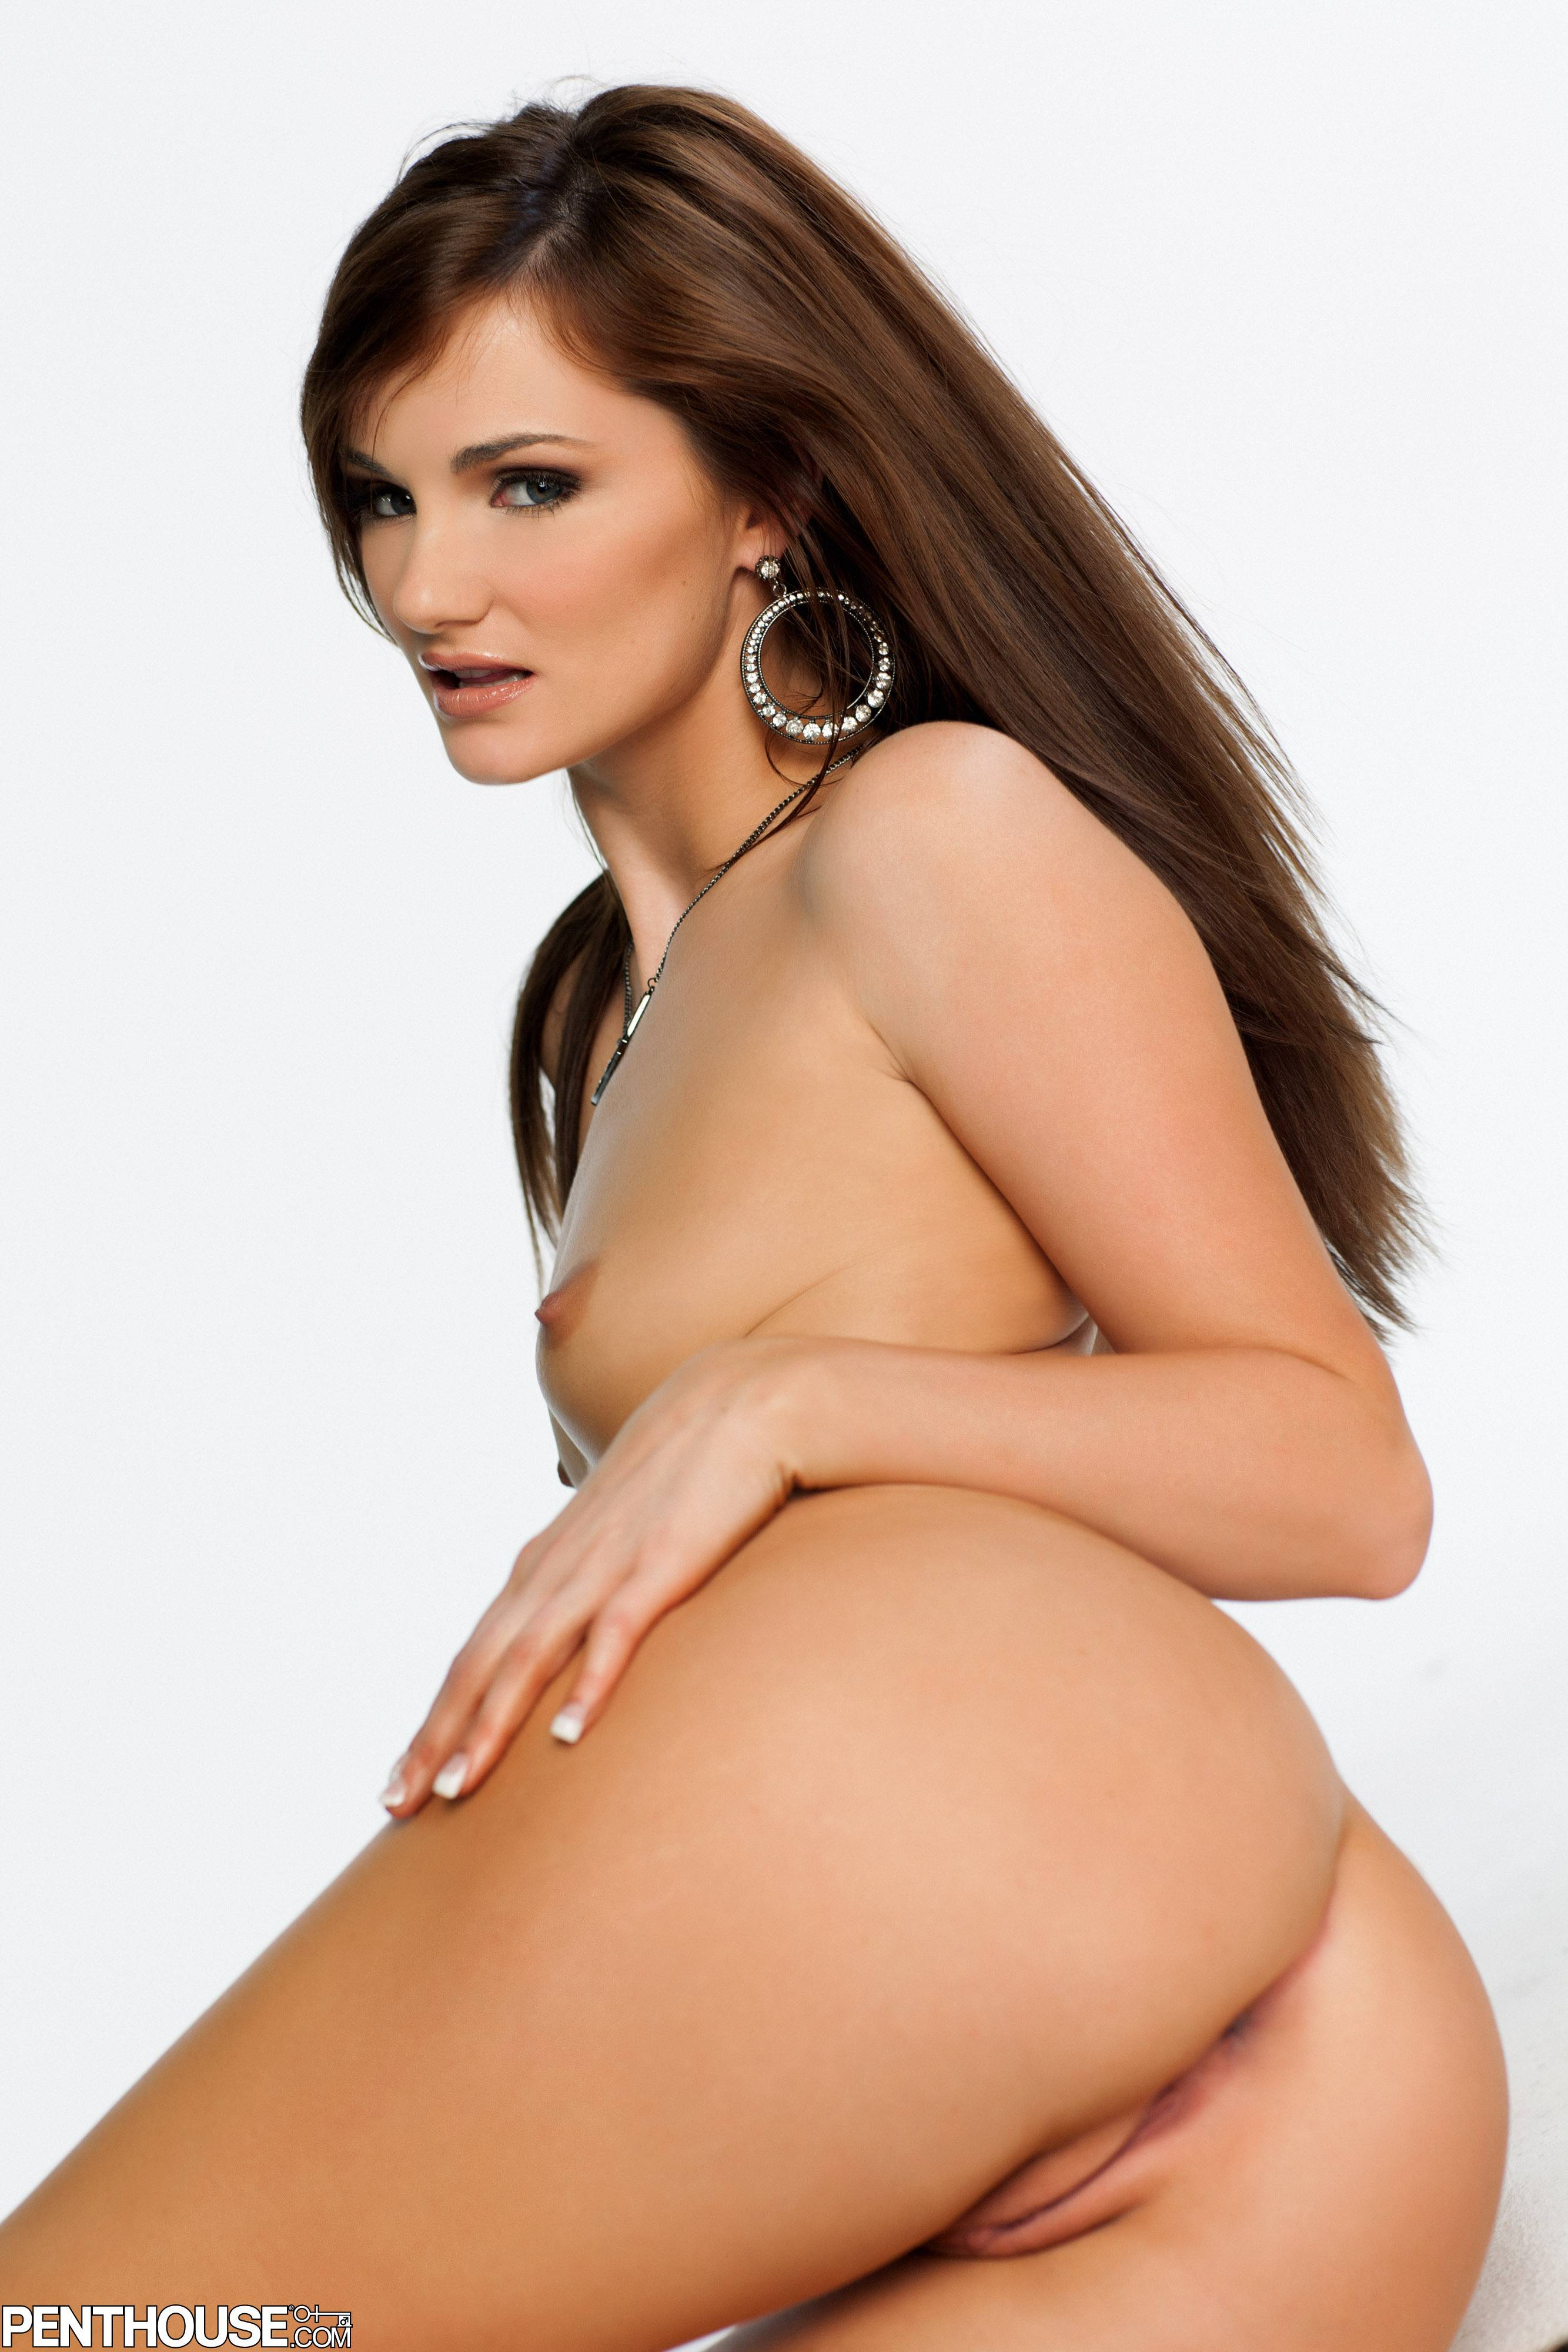 Lily carter new videos